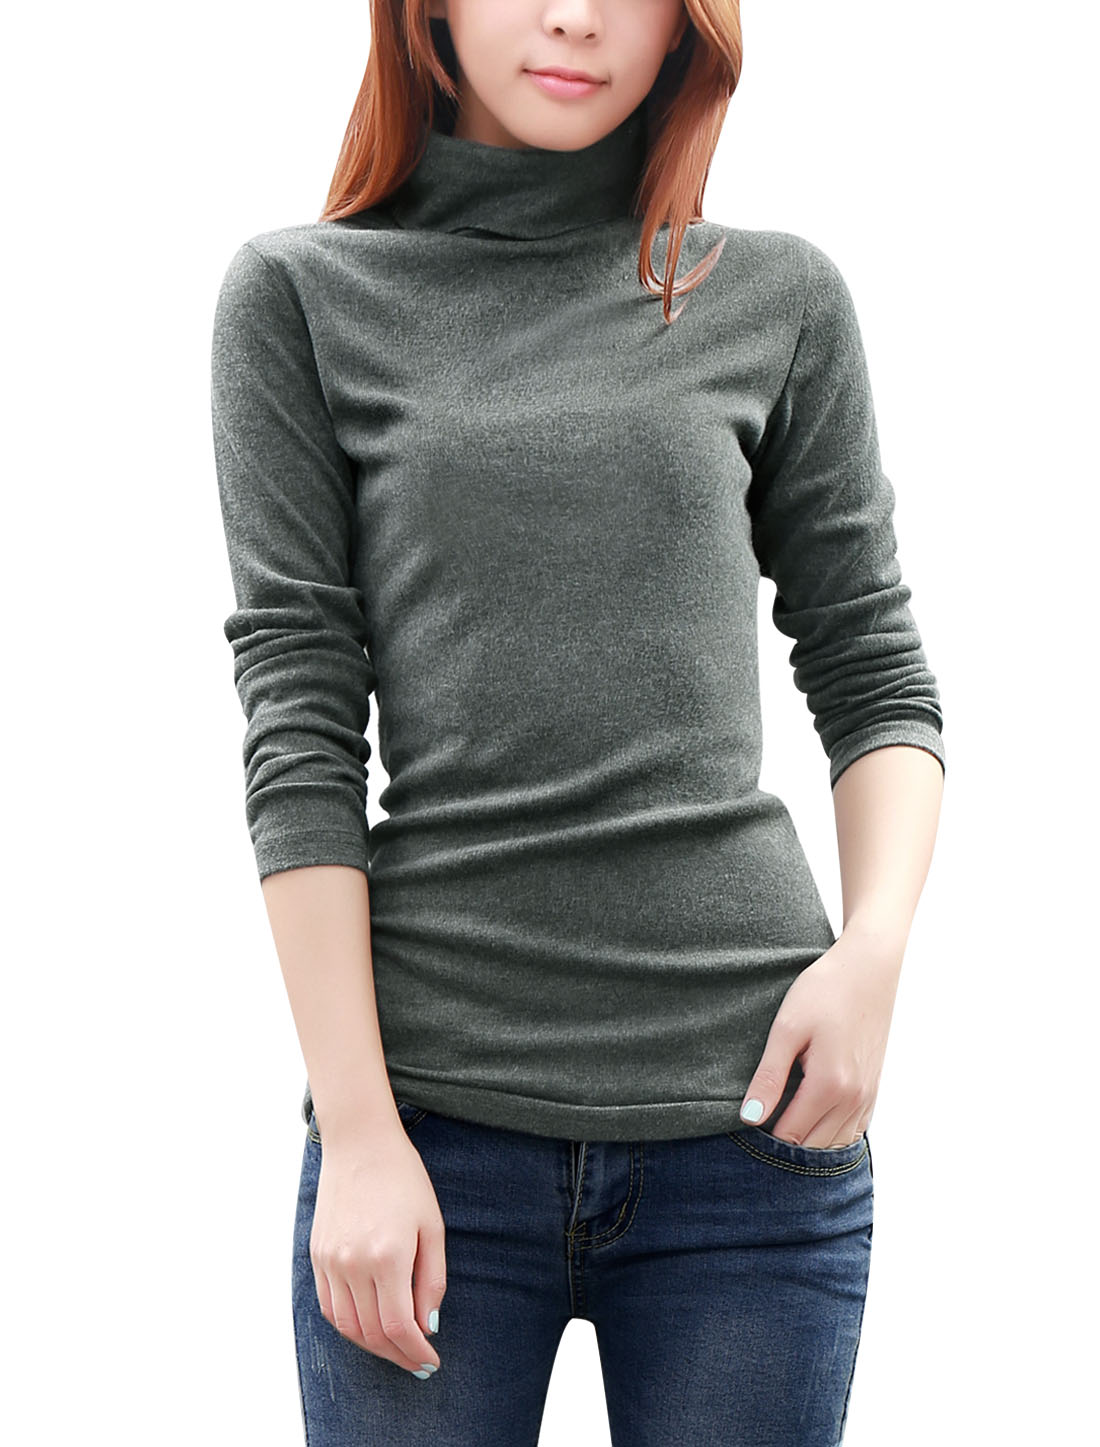 Ladies Turtle Neck Straight Cutting Stretchy Knit Shirt Dark Gray L